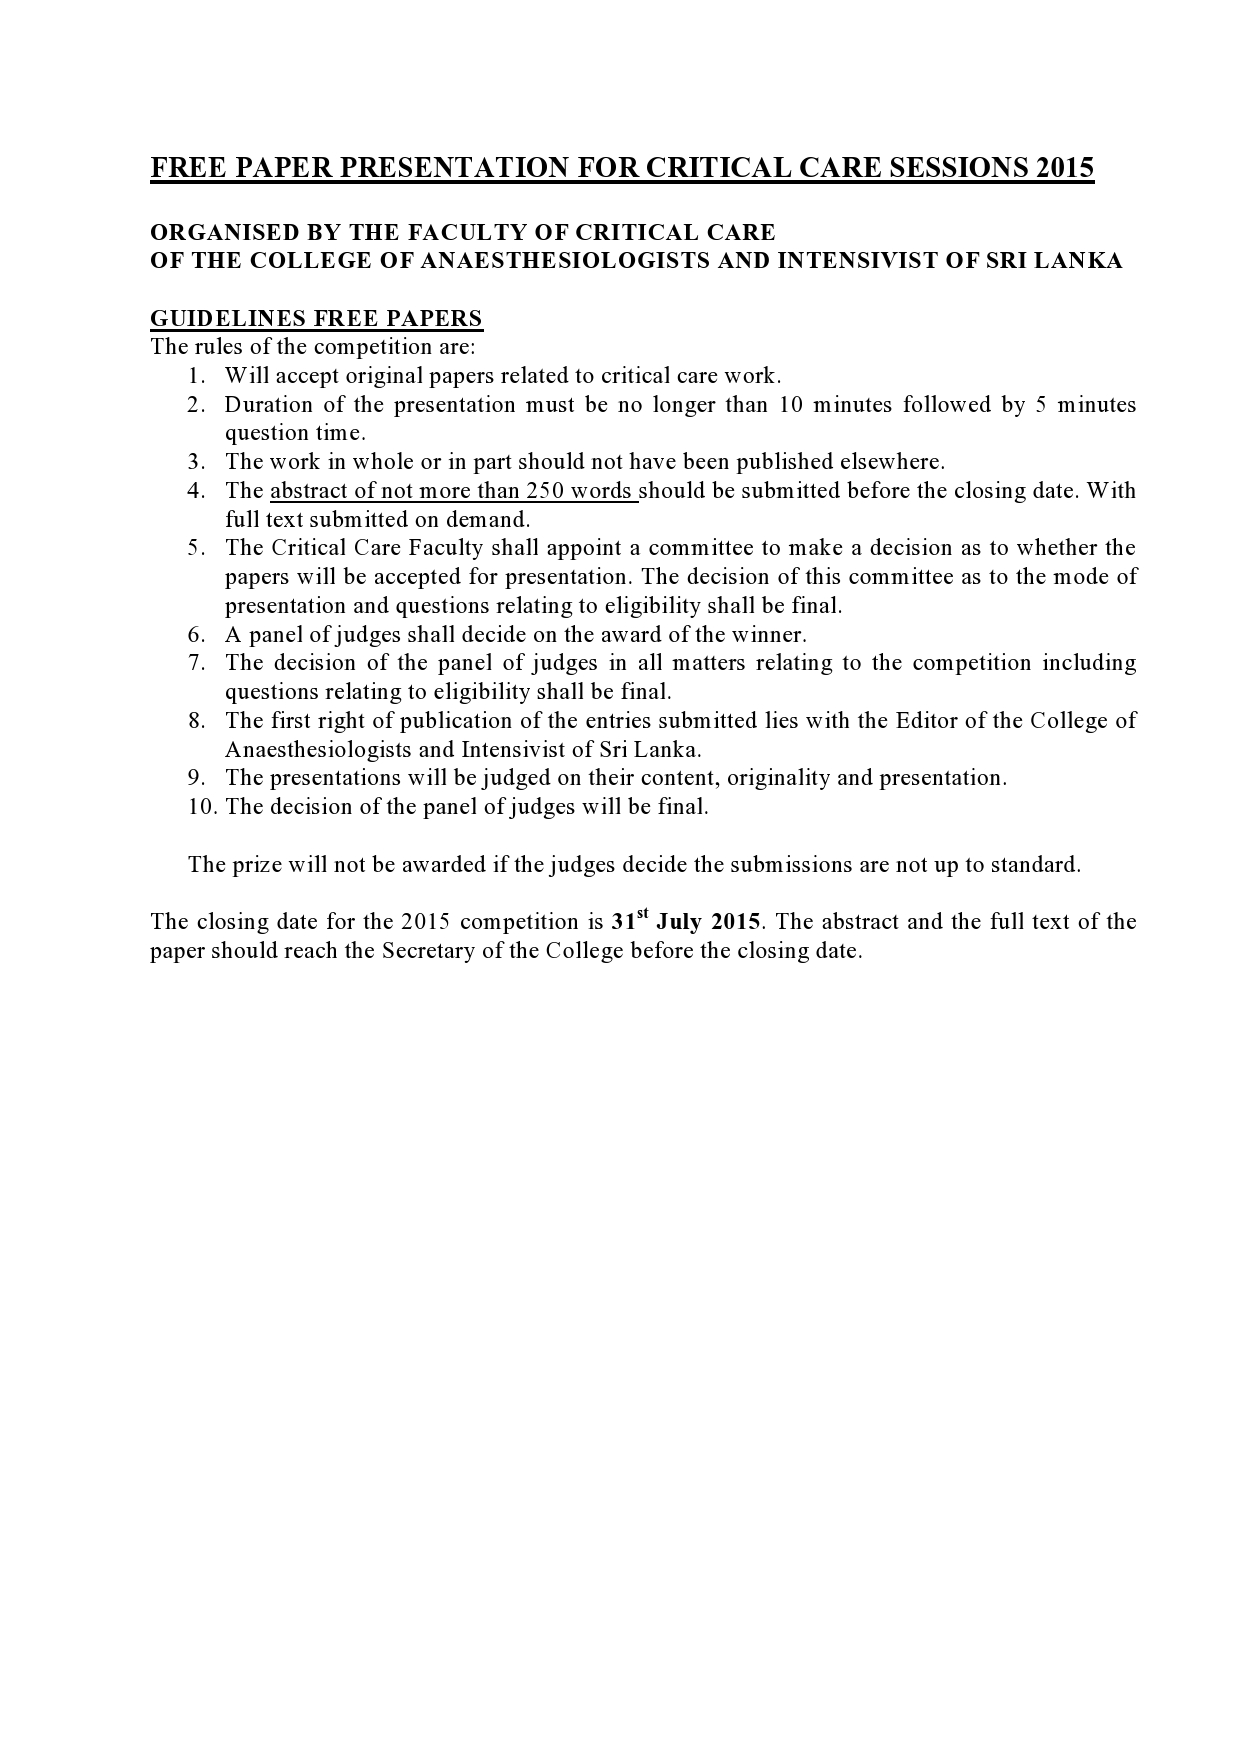 Guidelines for Free papers 2015 altered-page0001